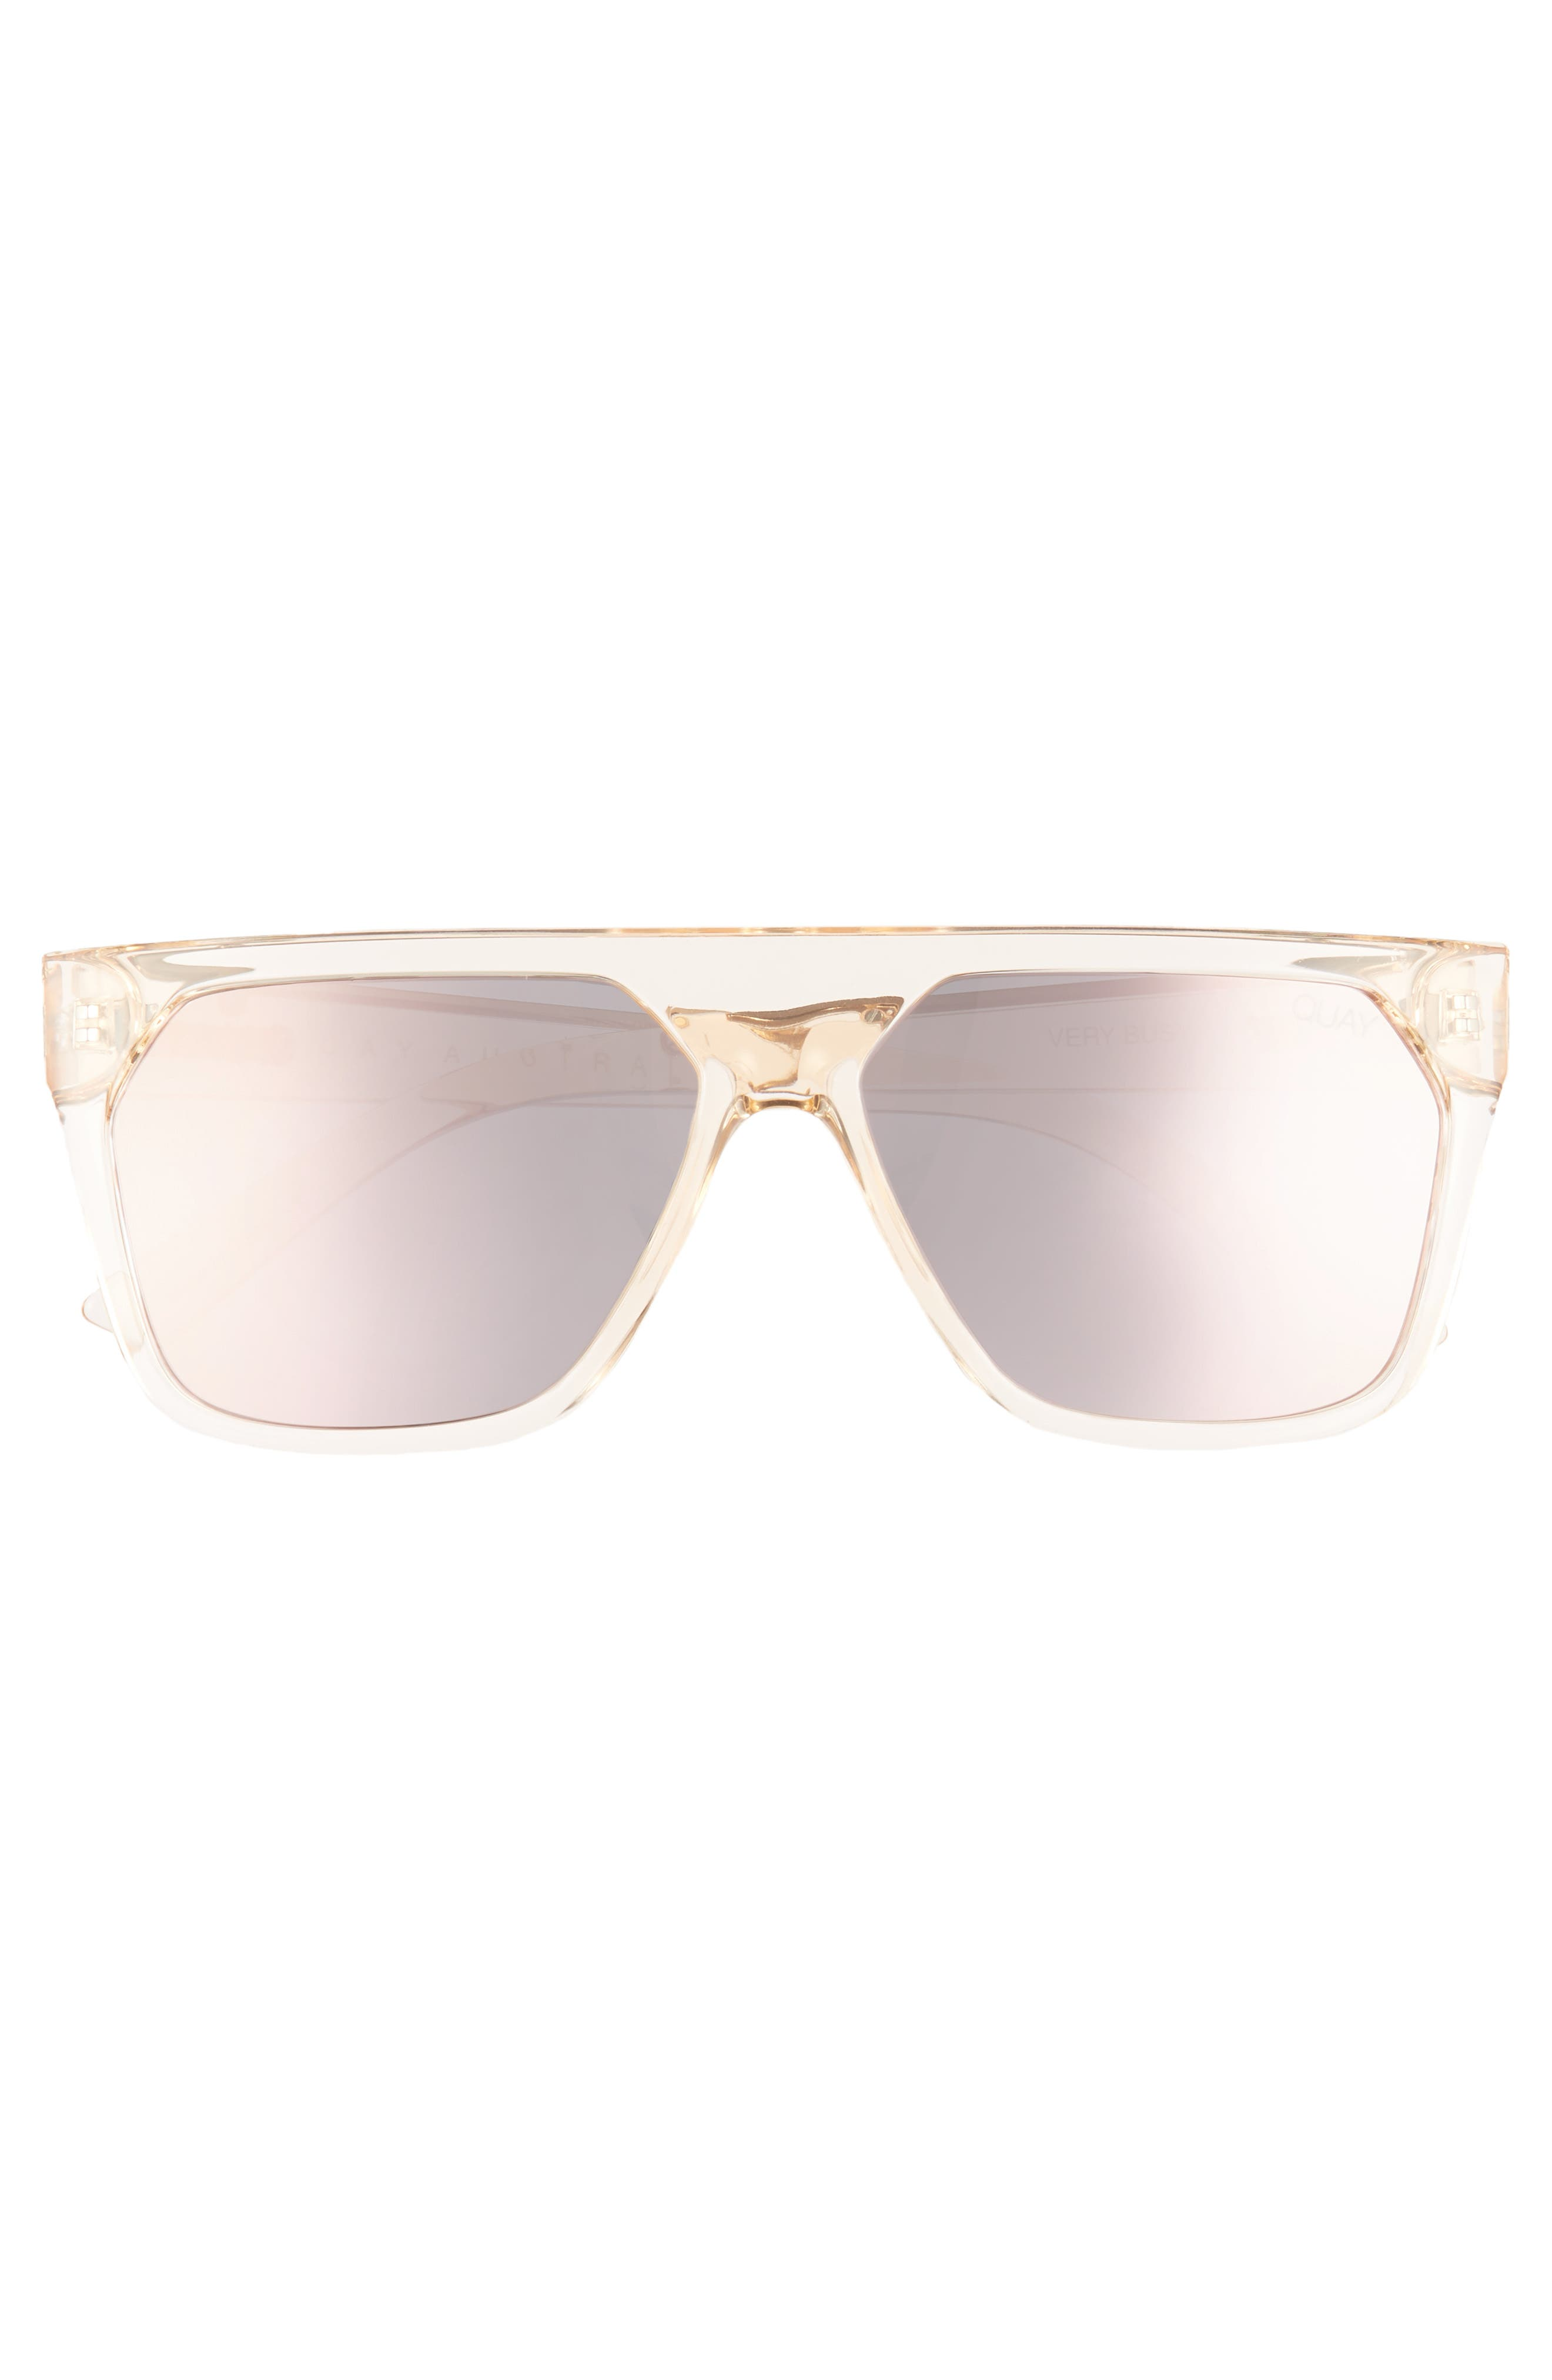 QUAY AUSTRALIA, x Jaclyn Hill Very Busy 58mm Shield Sunglasses, Alternate thumbnail 4, color, CHAMPAGNE / ROSE